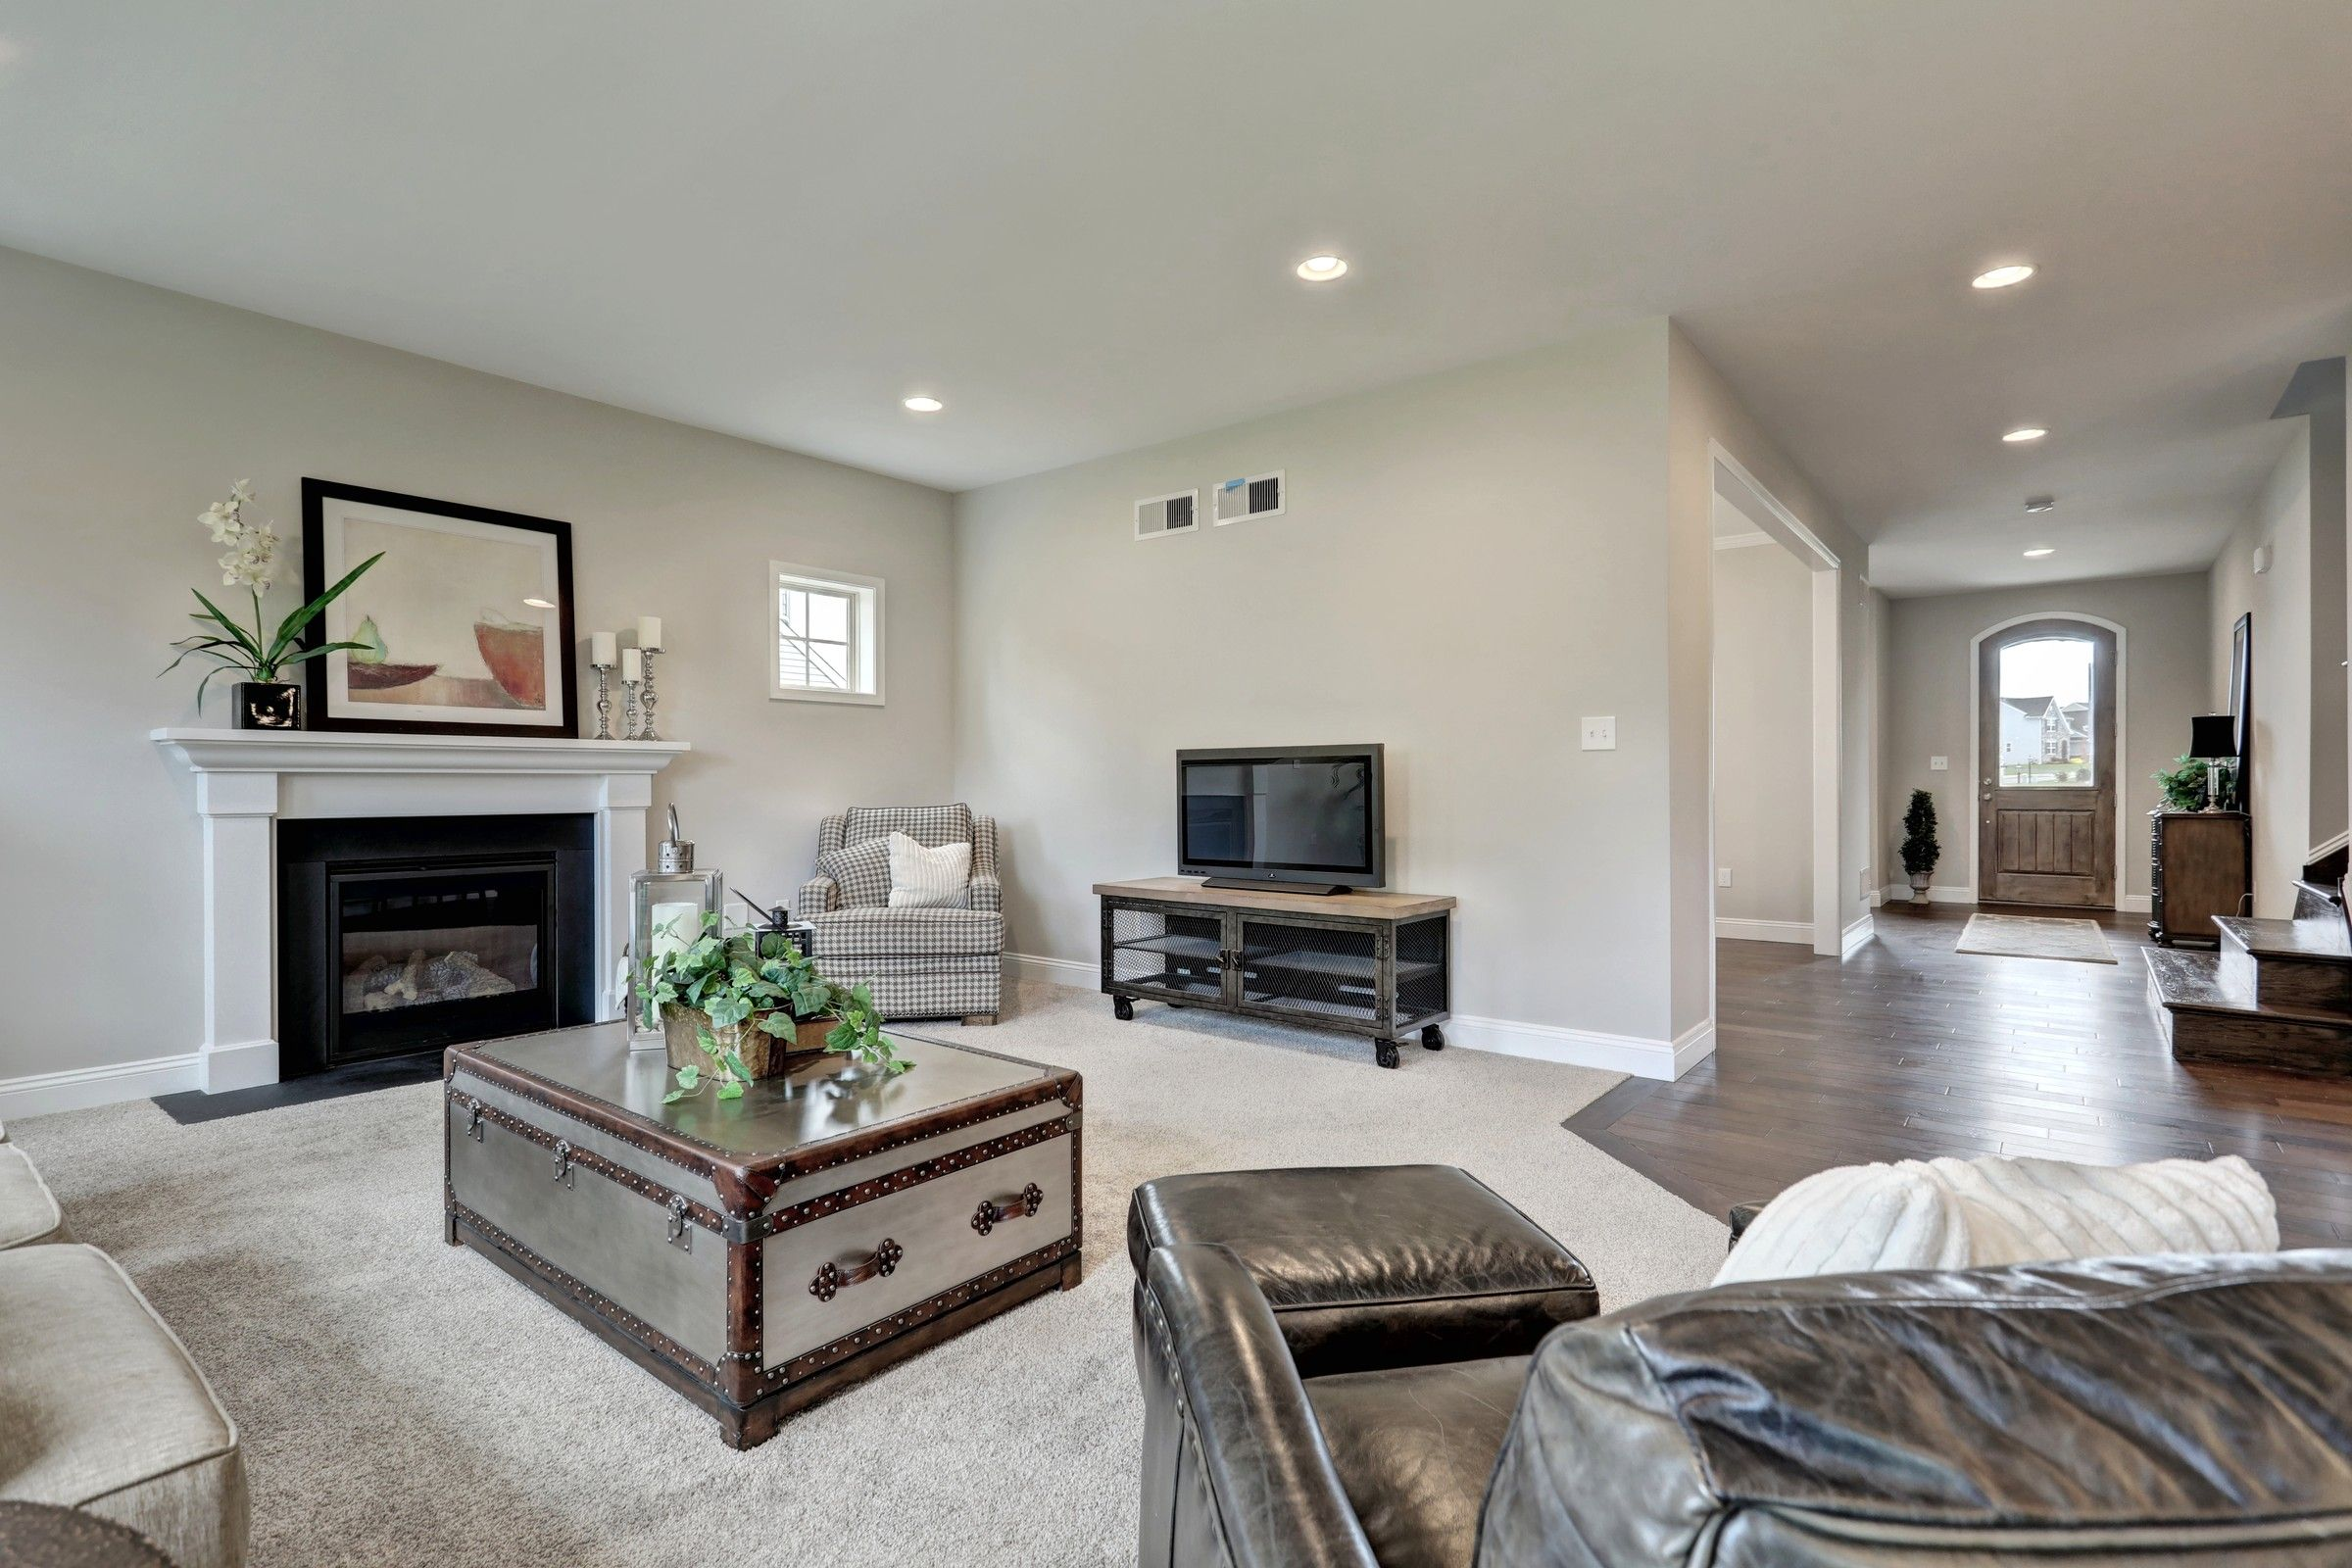 Living Area featured in the Covington Manor By Keystone Custom Homes in Lancaster, PA